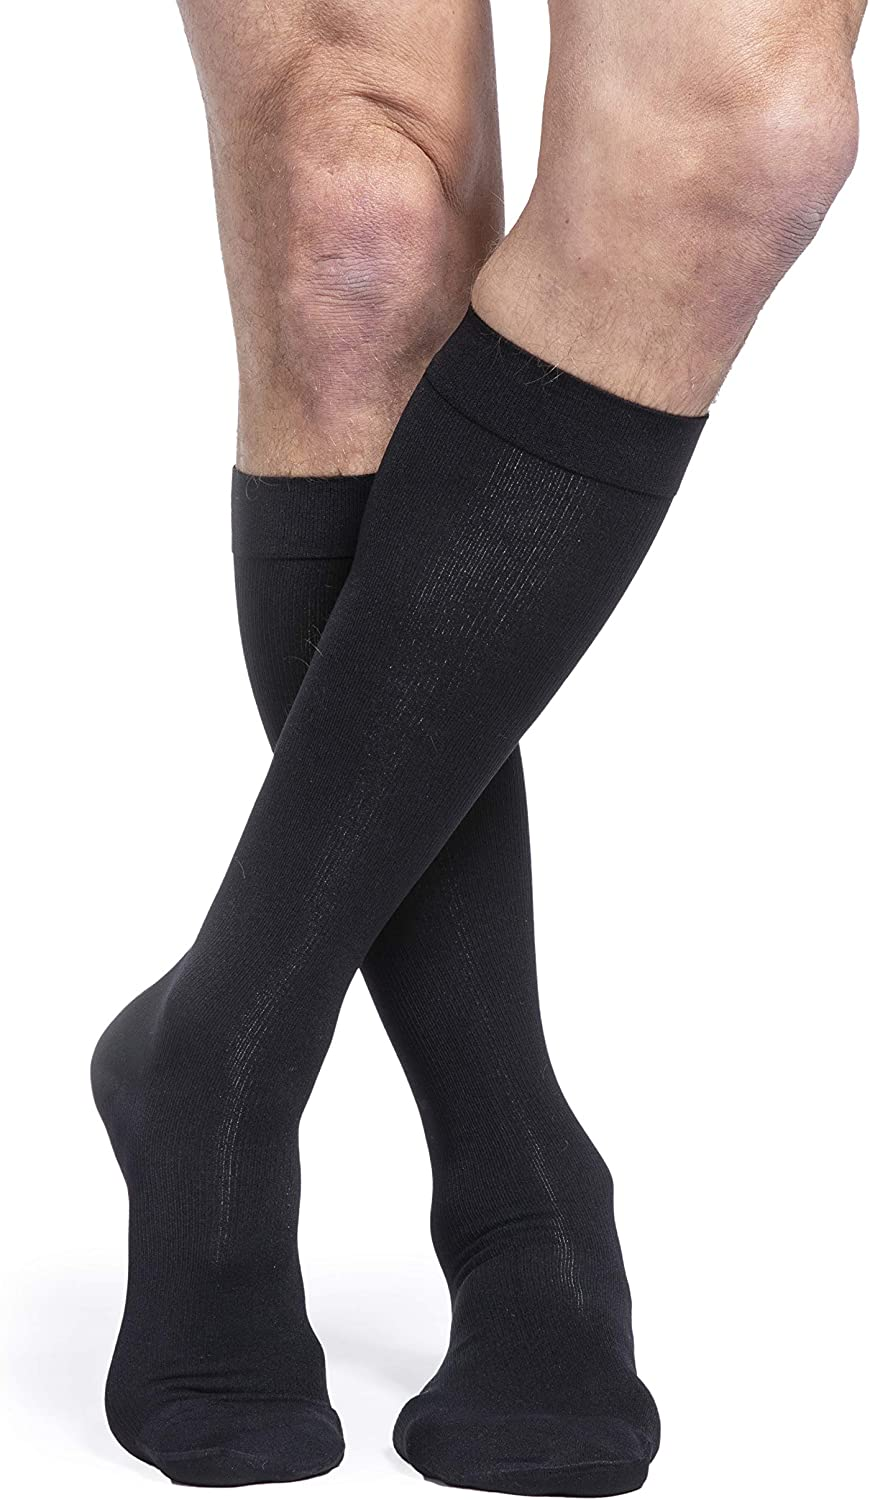 New mail order SIGVARIS Women's Essential Sale item Cotton 230 Toe Socks Closed Calf-High